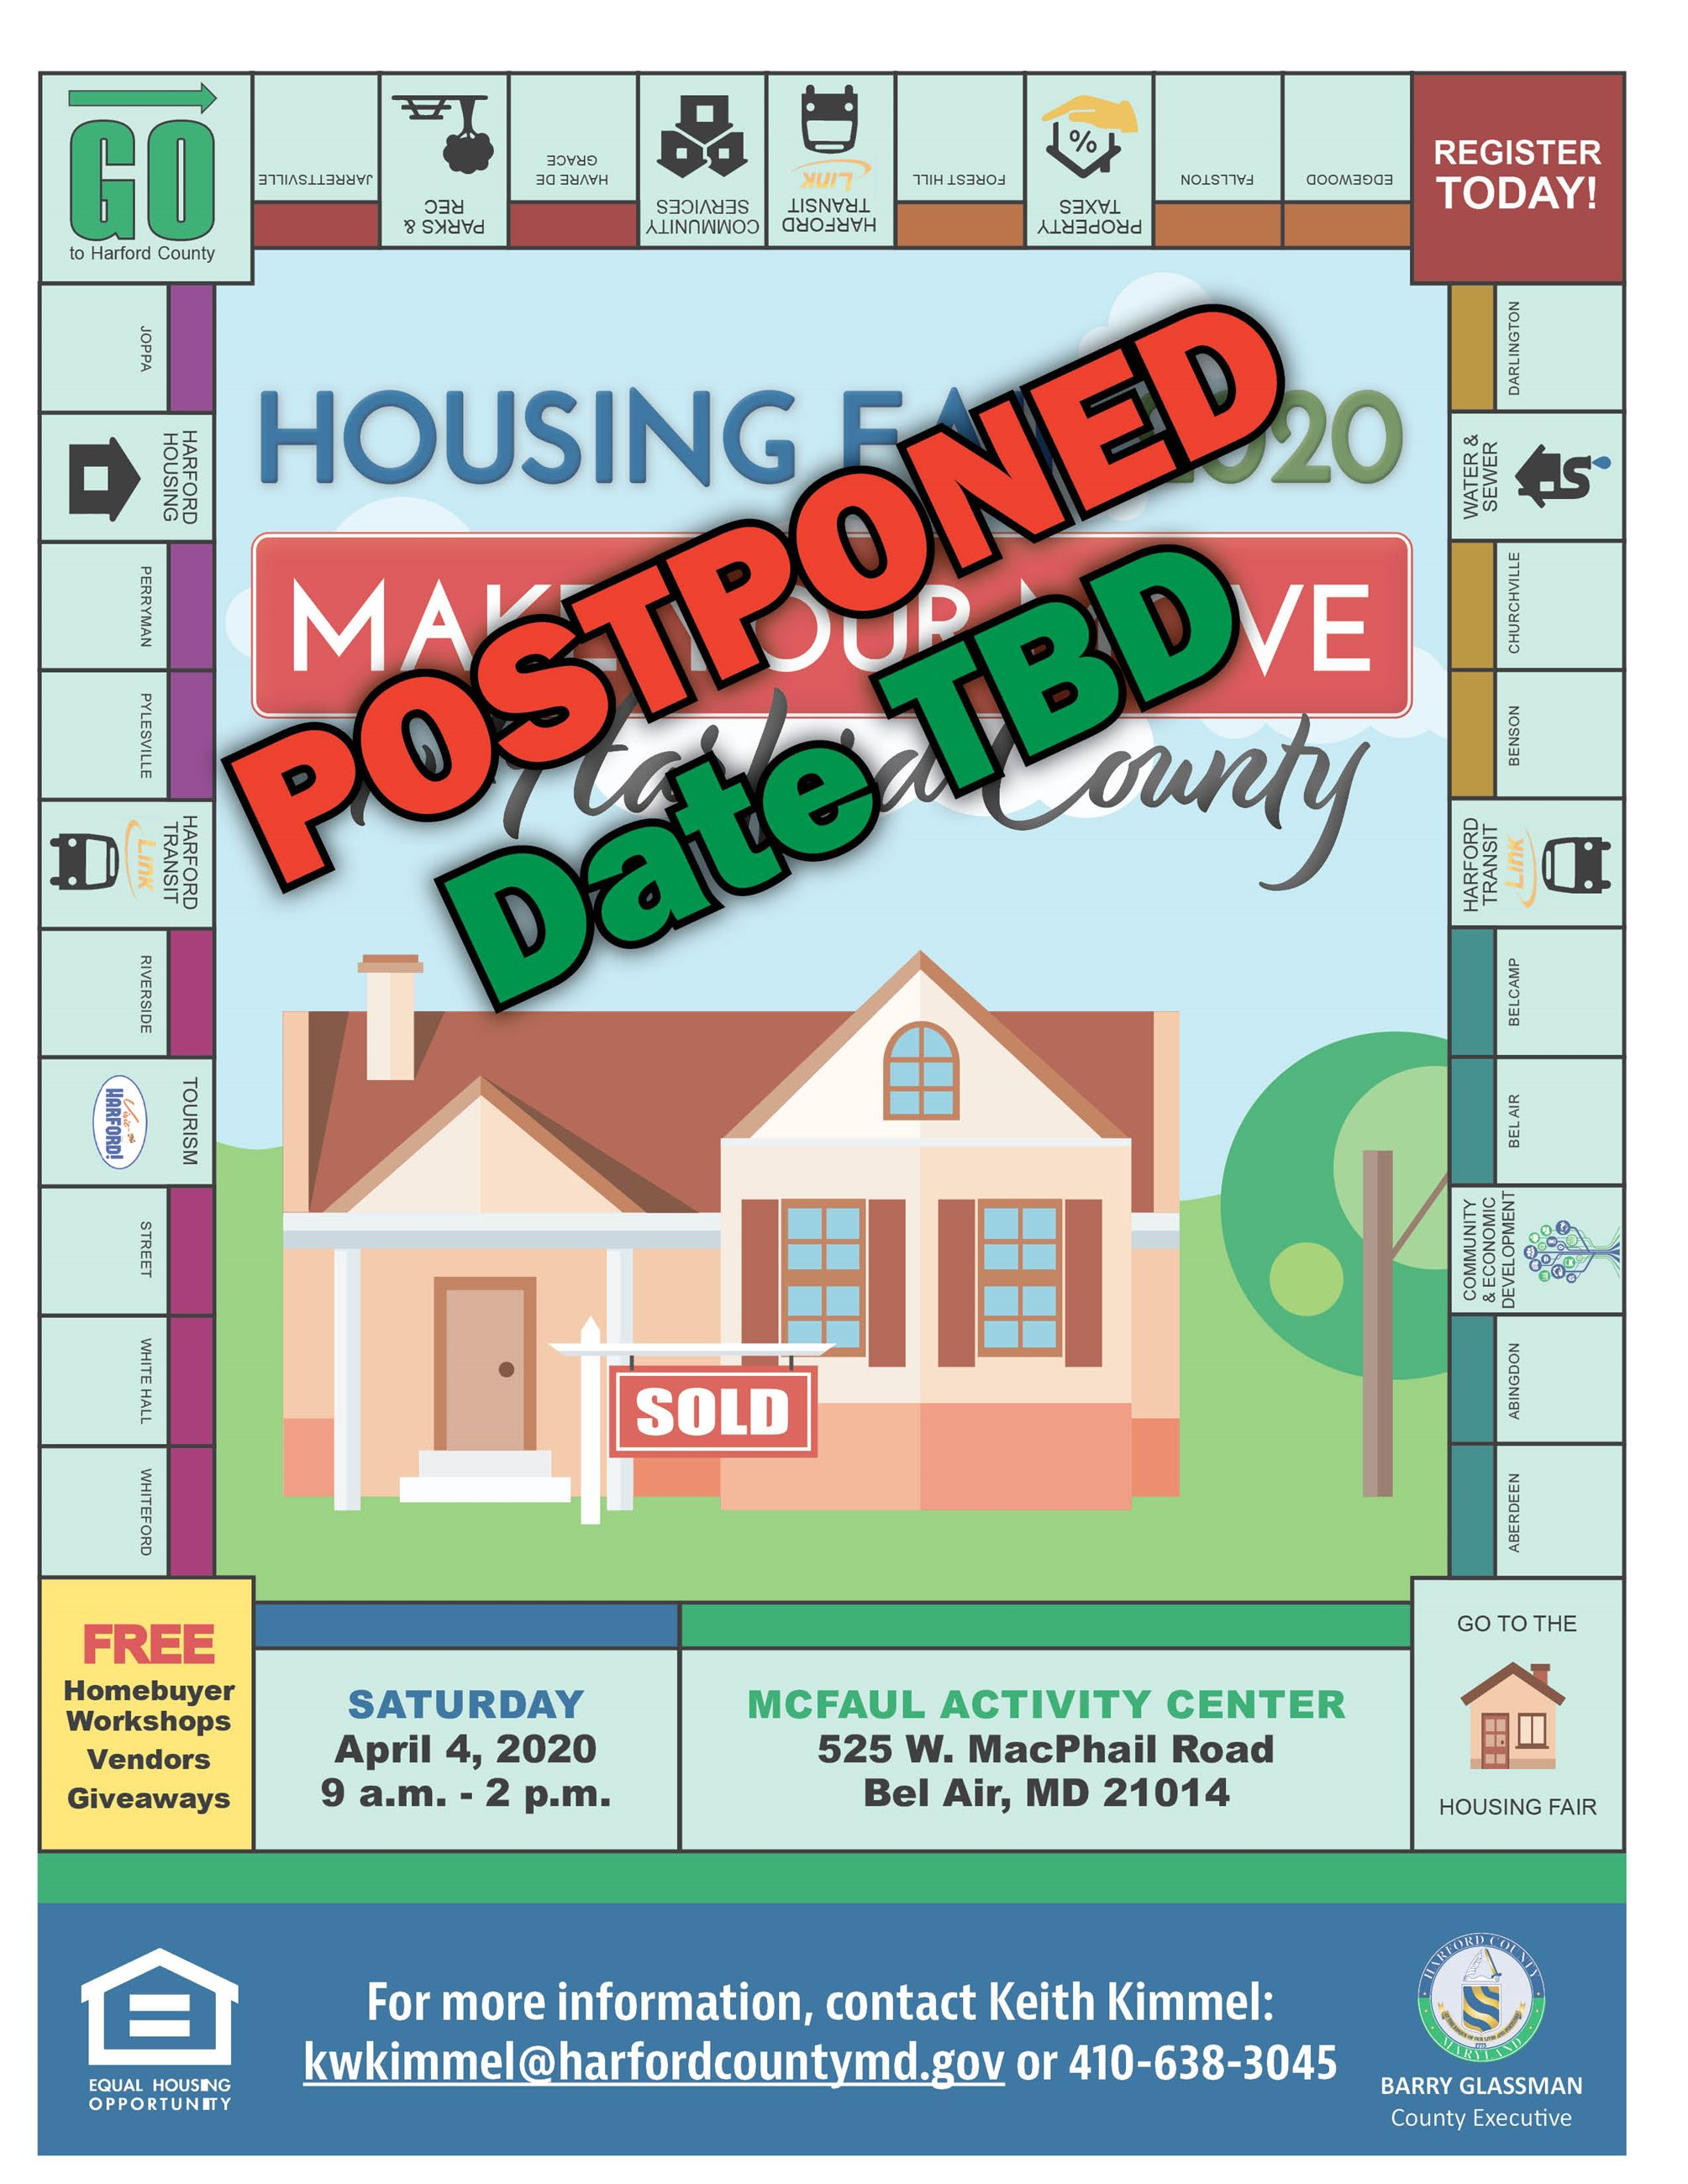 Housing Fair 2020 POSTPONED